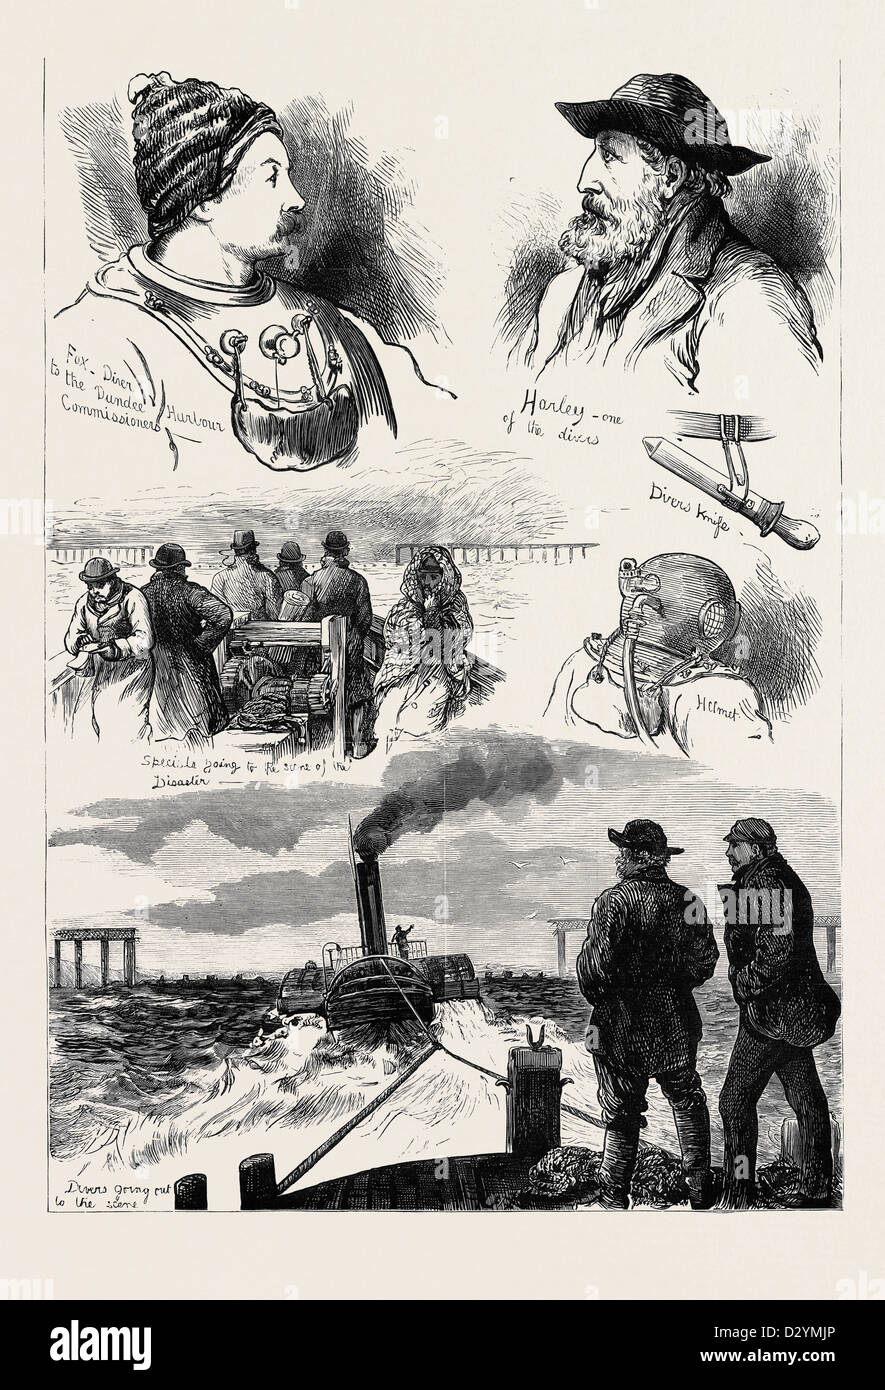 THE TAY BRIDGE DISASTER 1880 - Stock Image